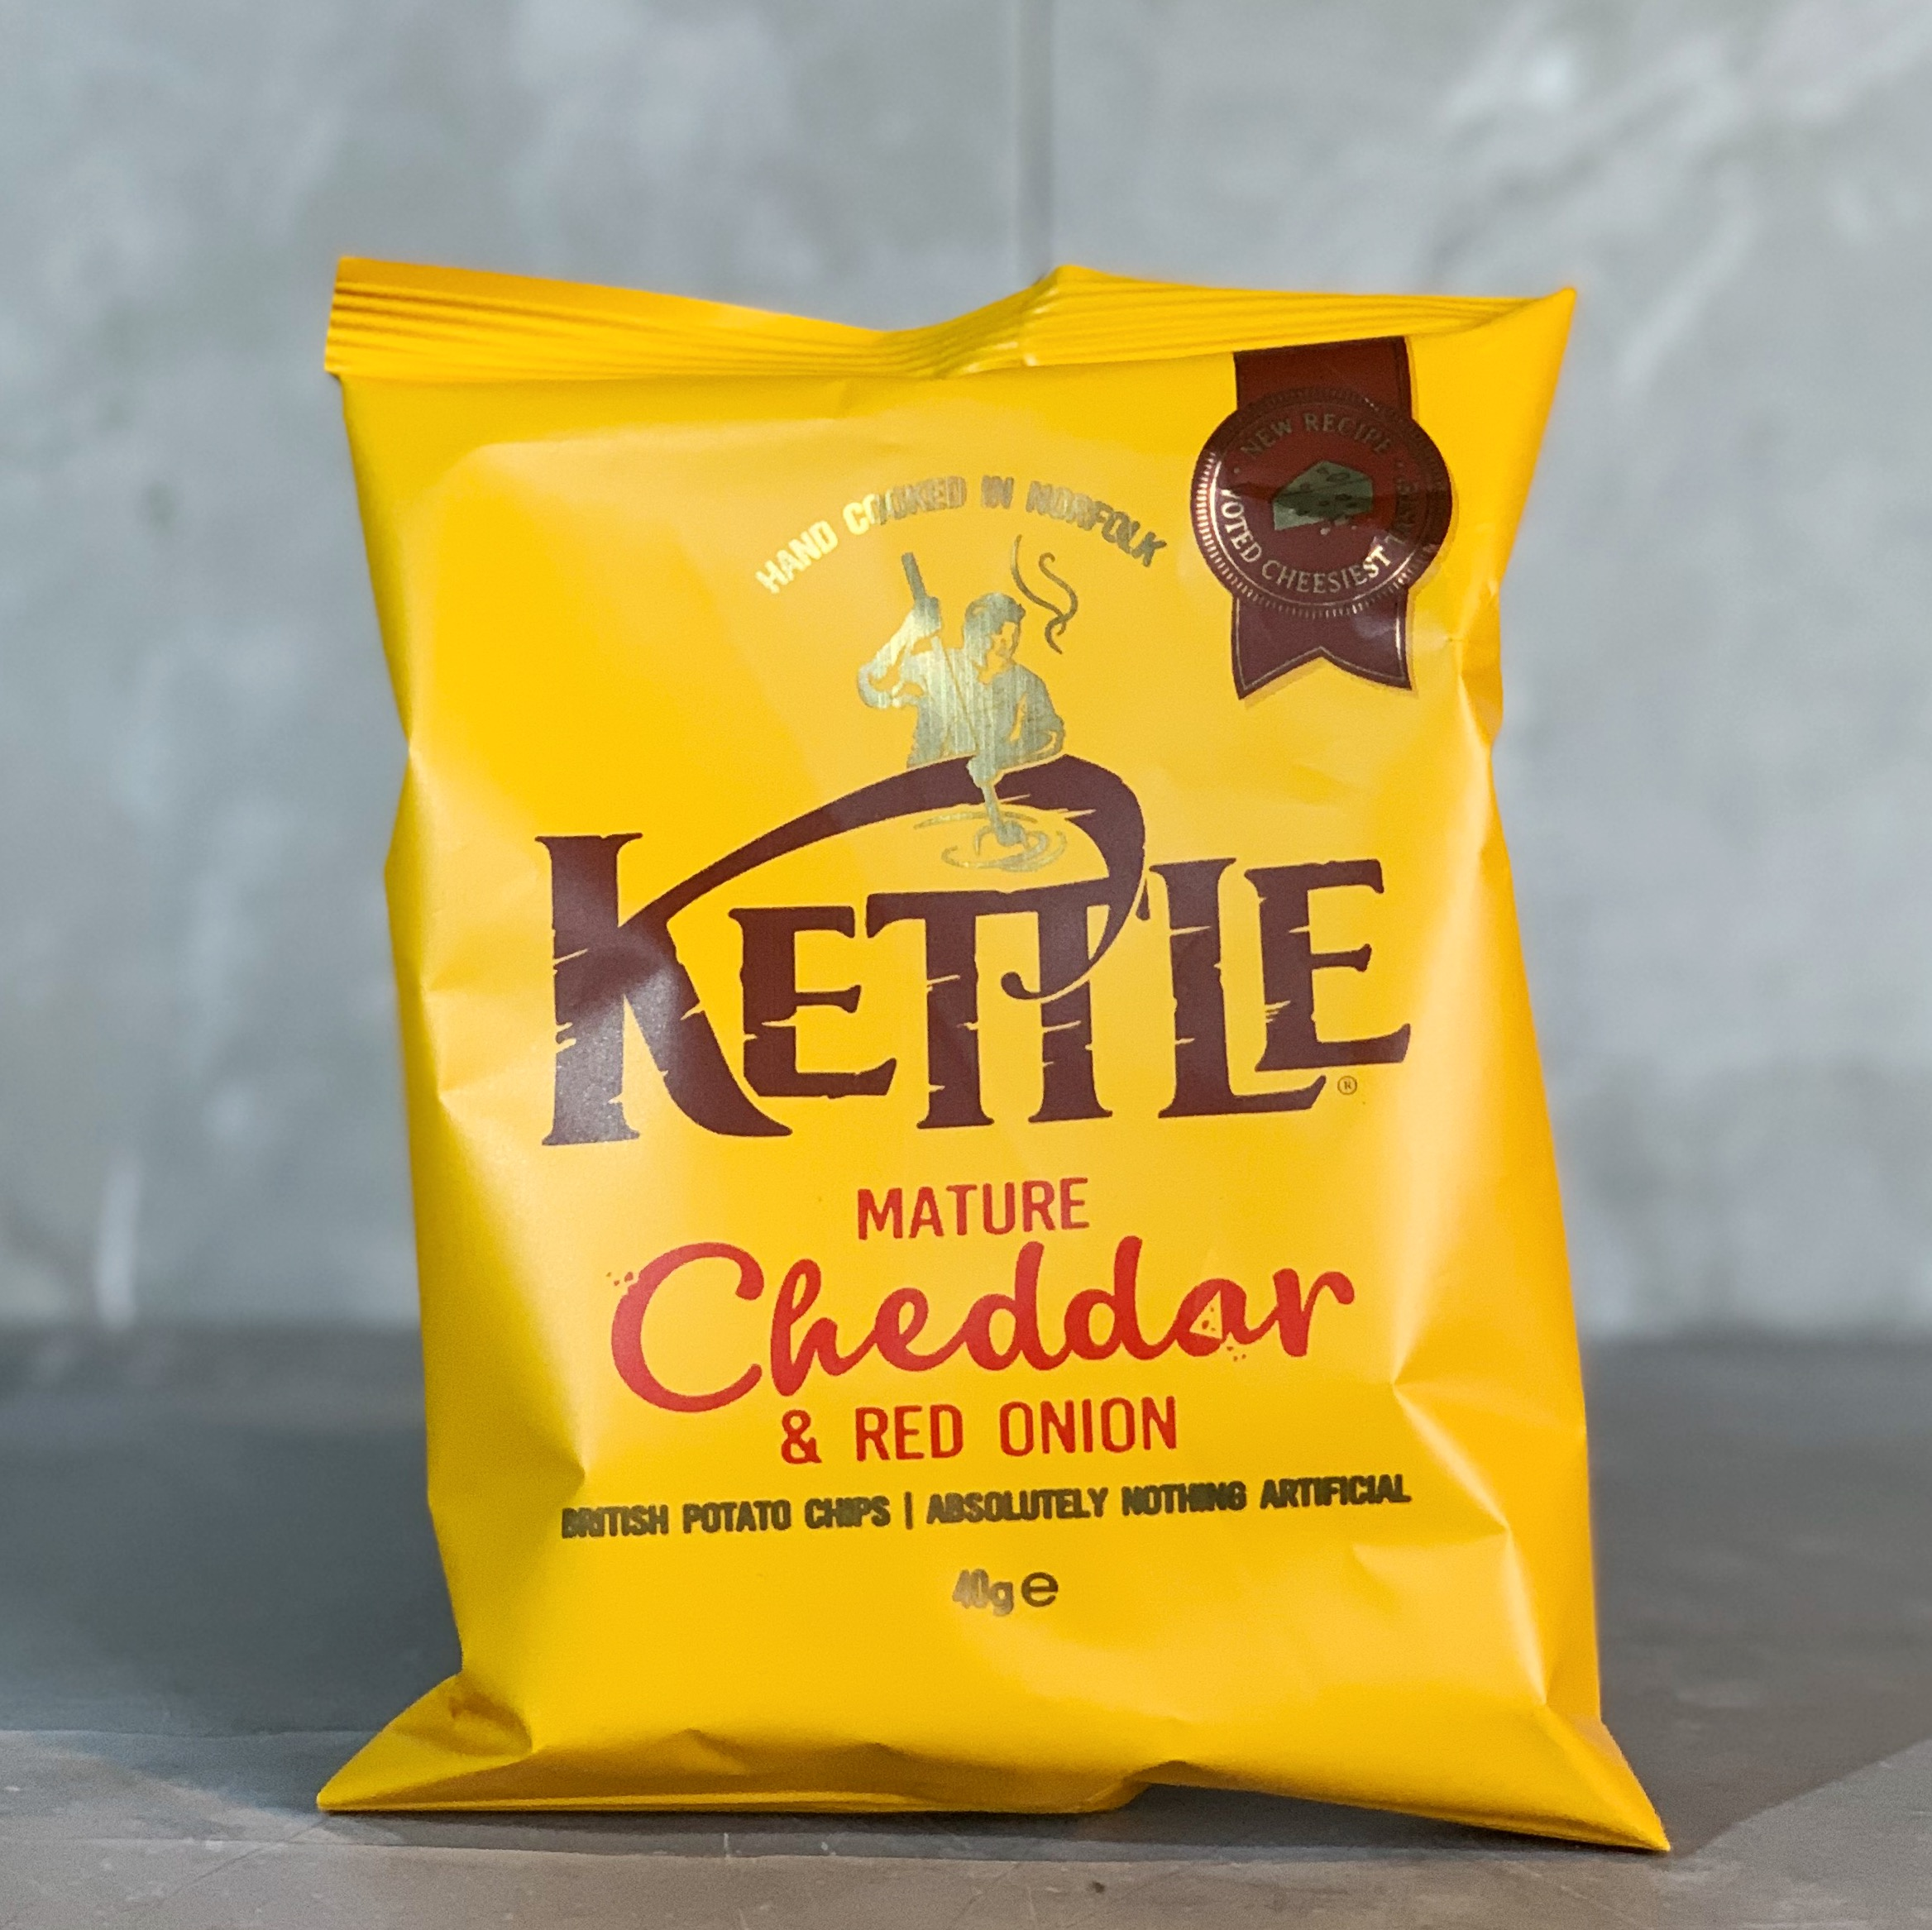 Kettle Crisp Cheddar & Red Onion